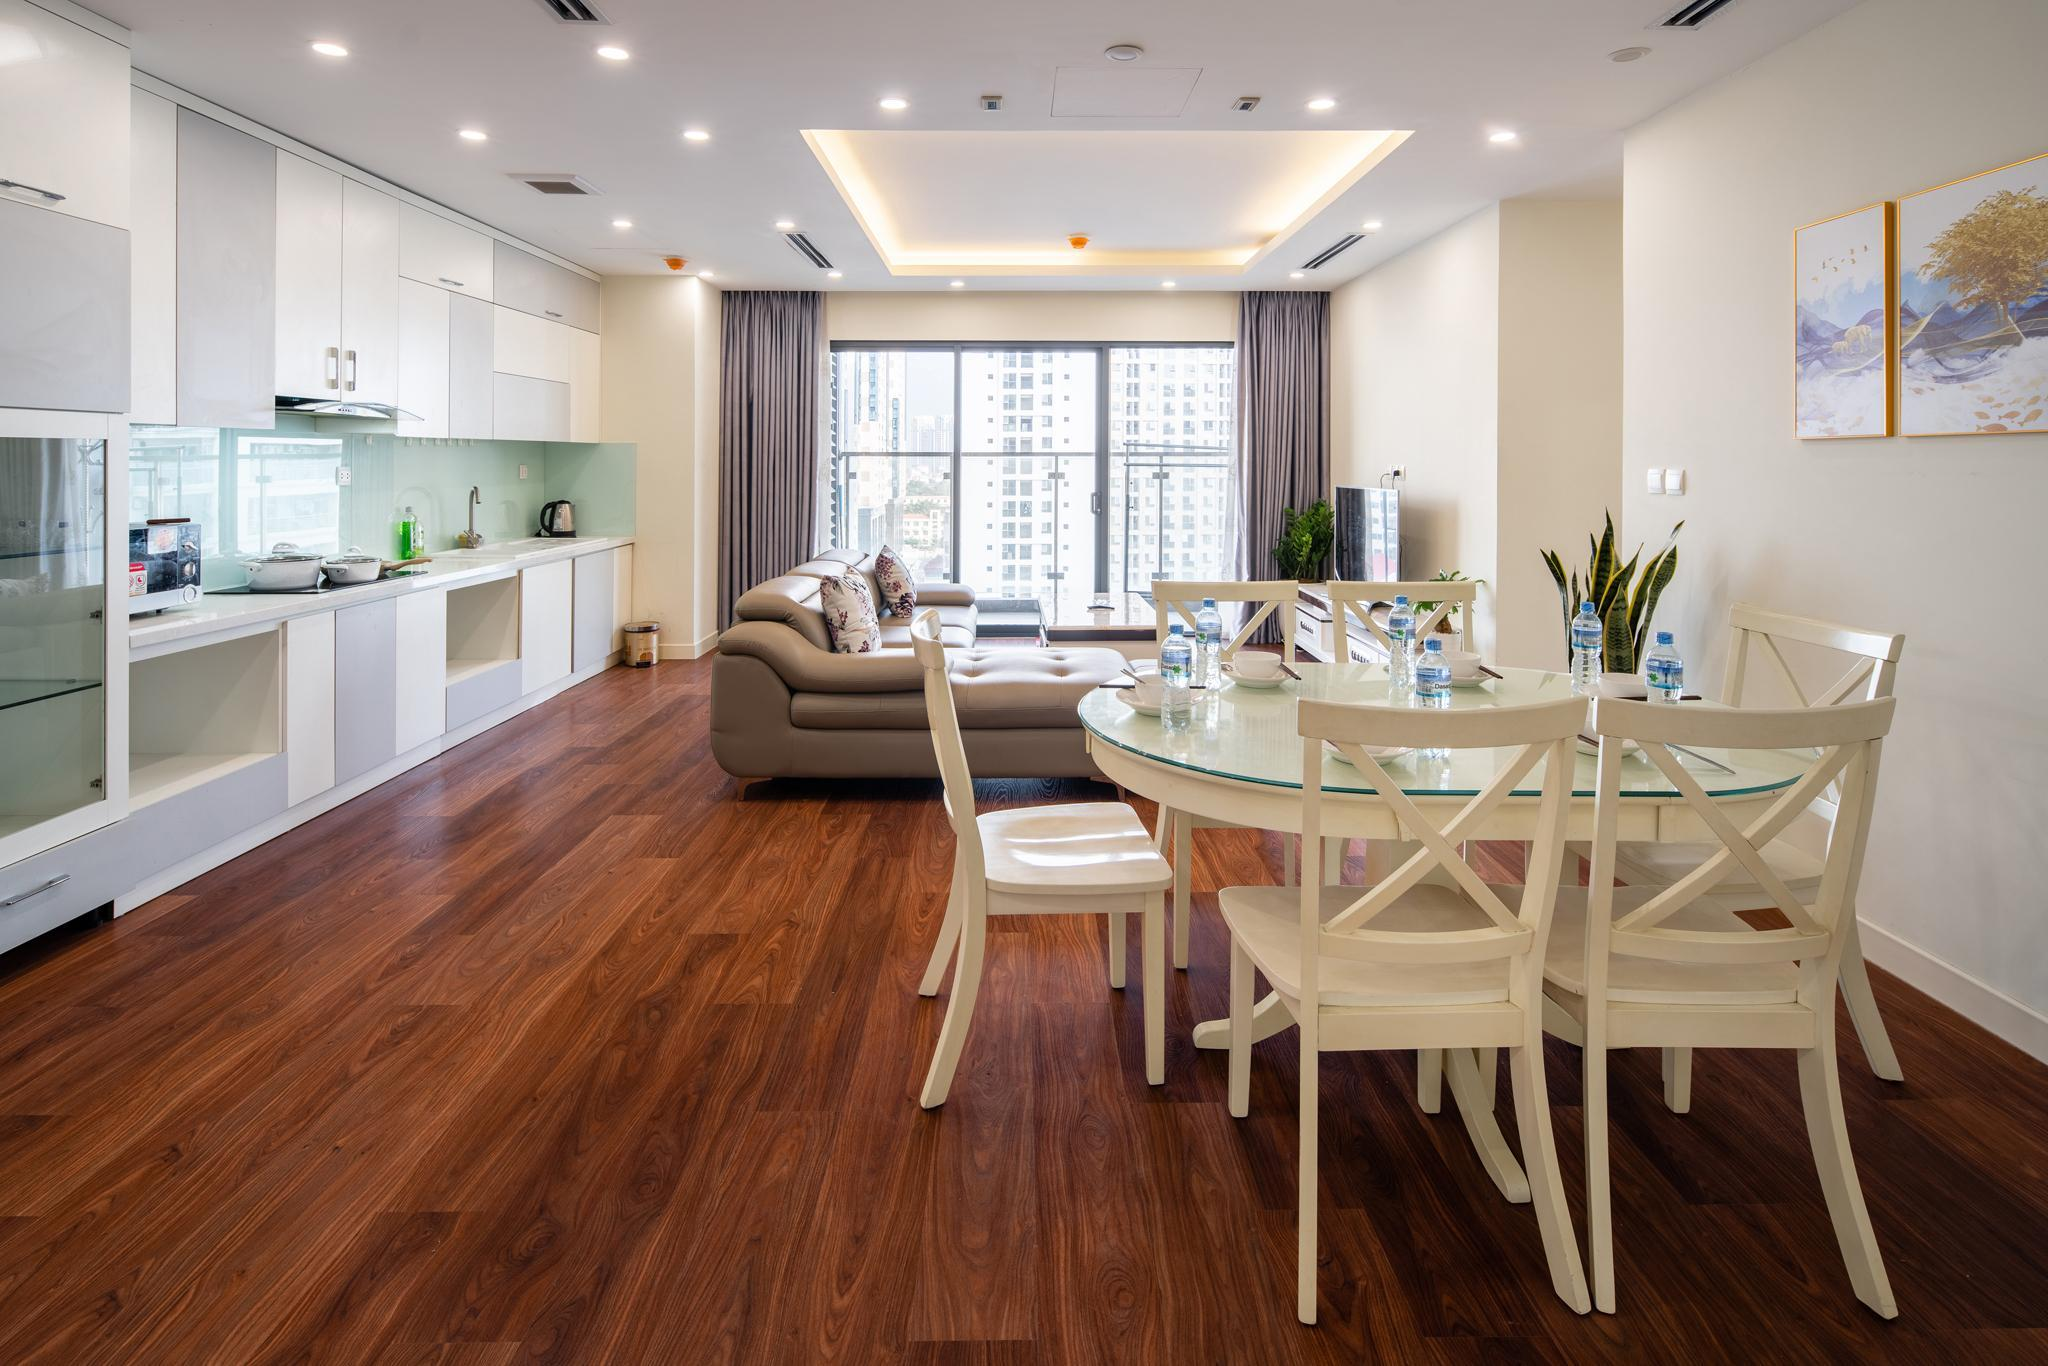 VipHome028 Luxury Imperia Apartment 4BR Full Light